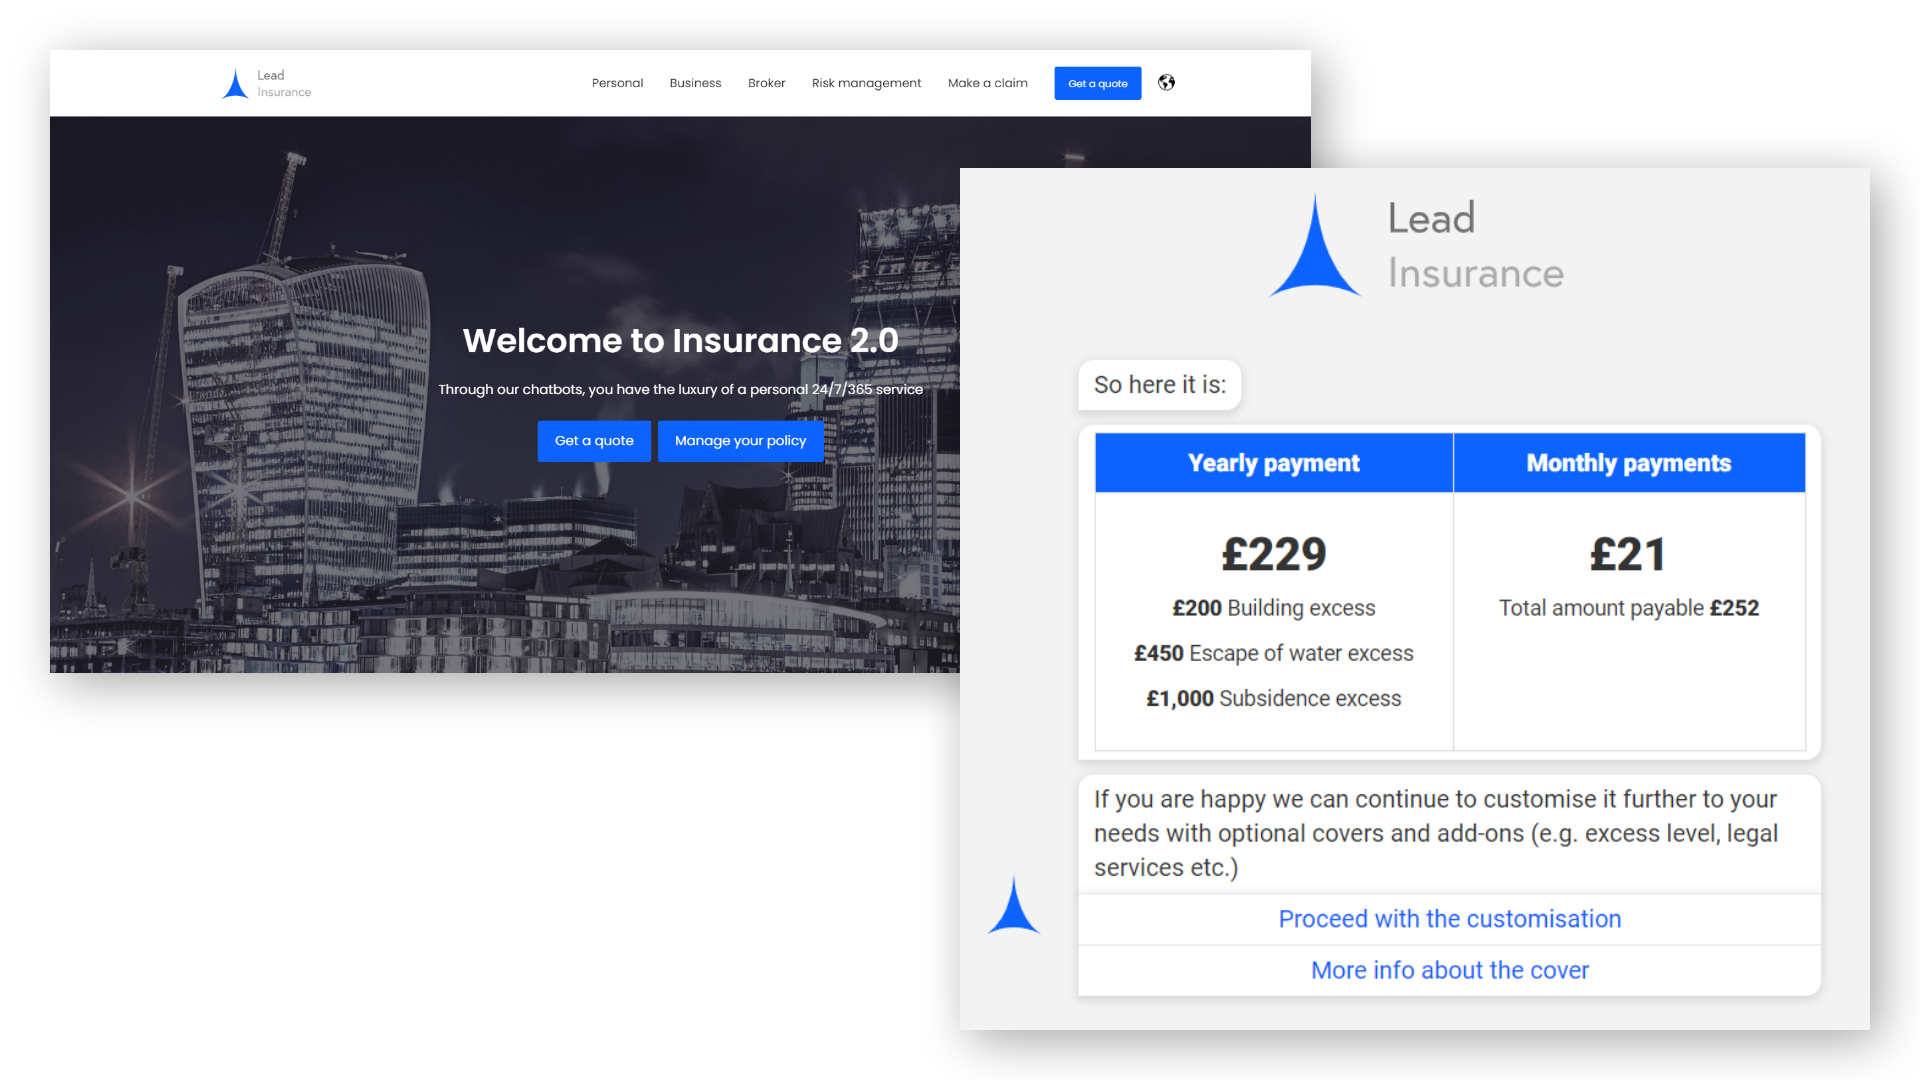 Demo with web page and chatbot conversation with insurance quote